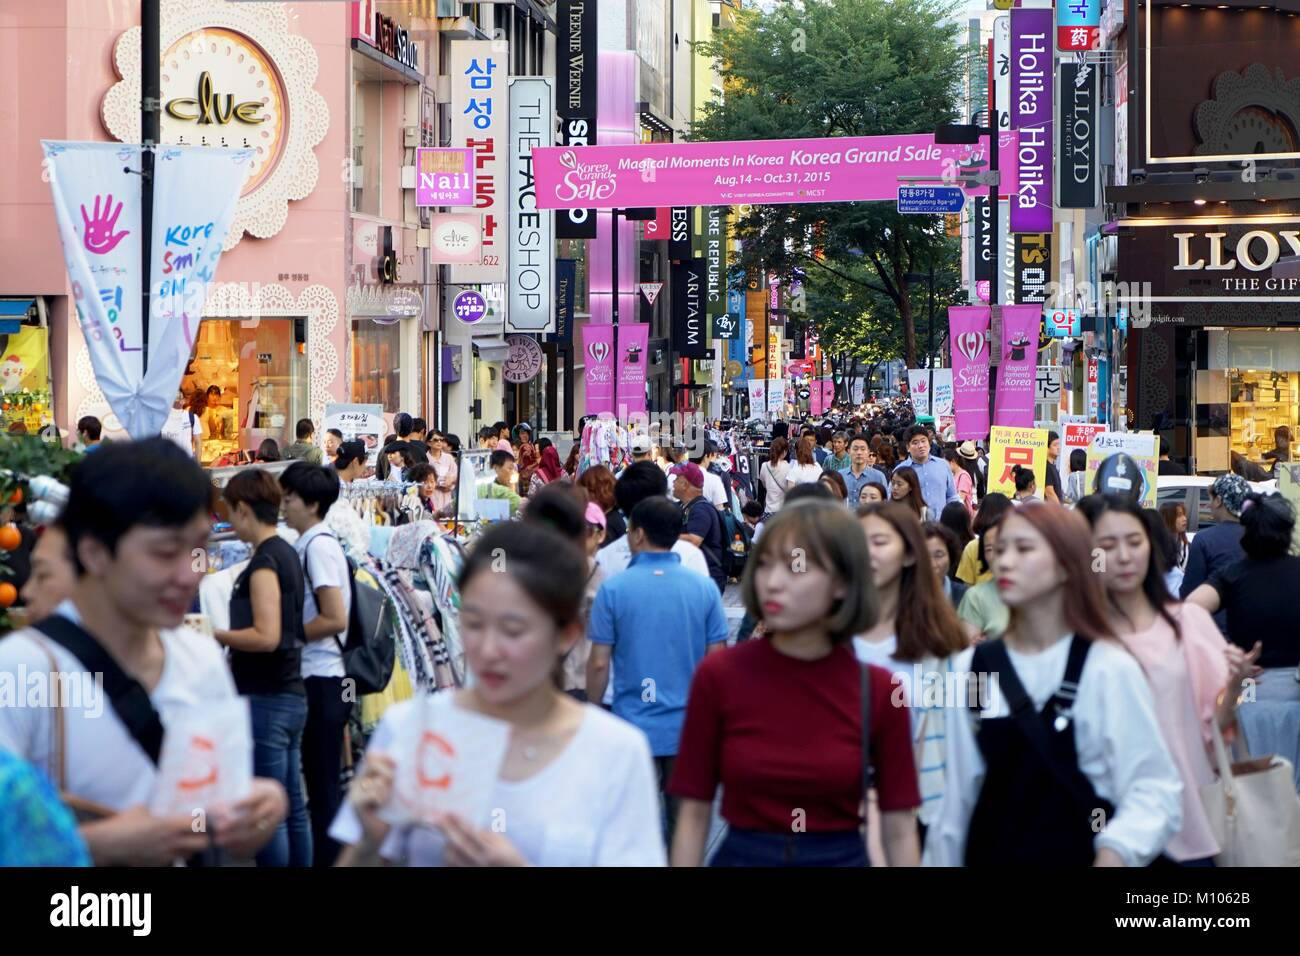 South Korea: Crowded shopping street in Seoul's Myeongdong district. Photo from 8. September 2015. | usage worldwide - Stock Image